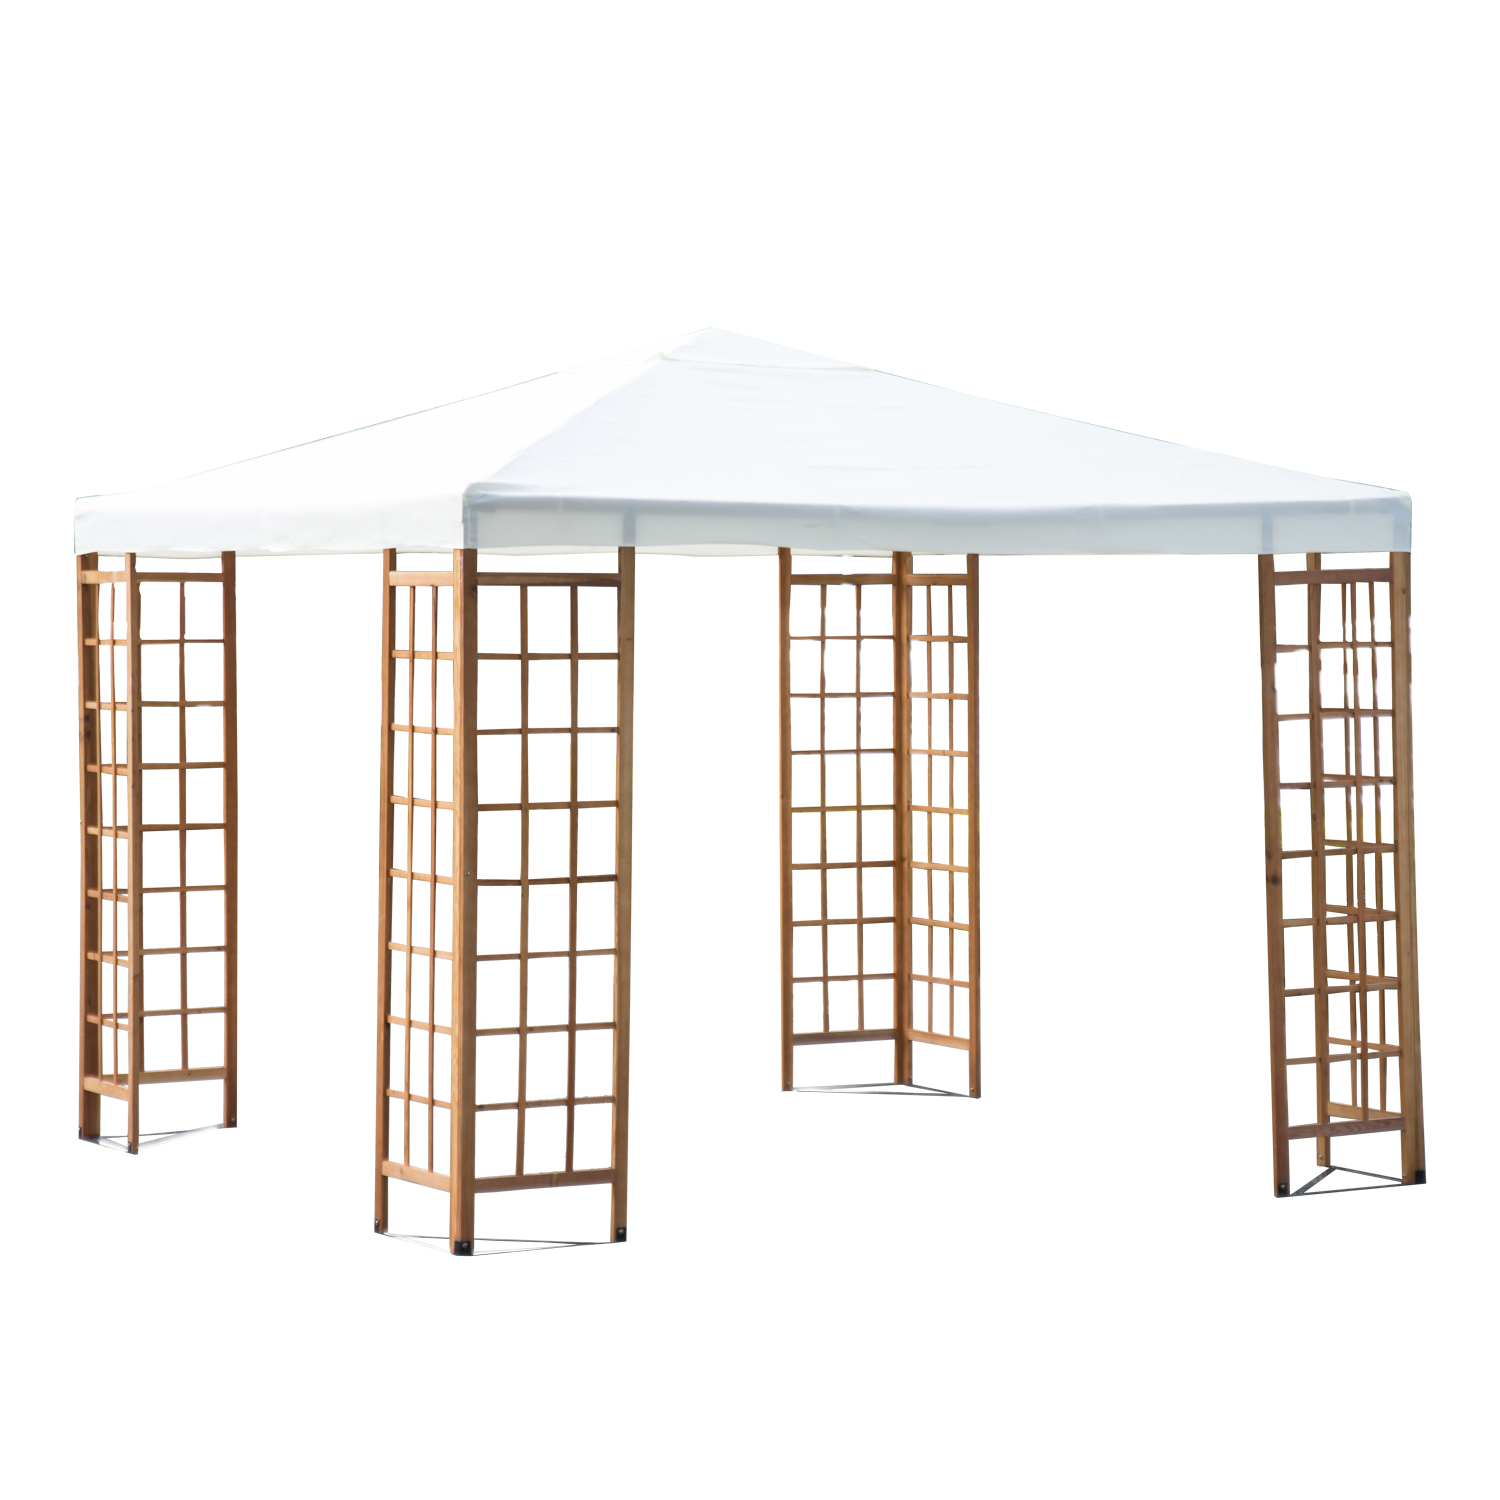 "Outsunny 10"" x 10"" Outdoor Patio Canopy Pavilion Gazebo """" Beige"